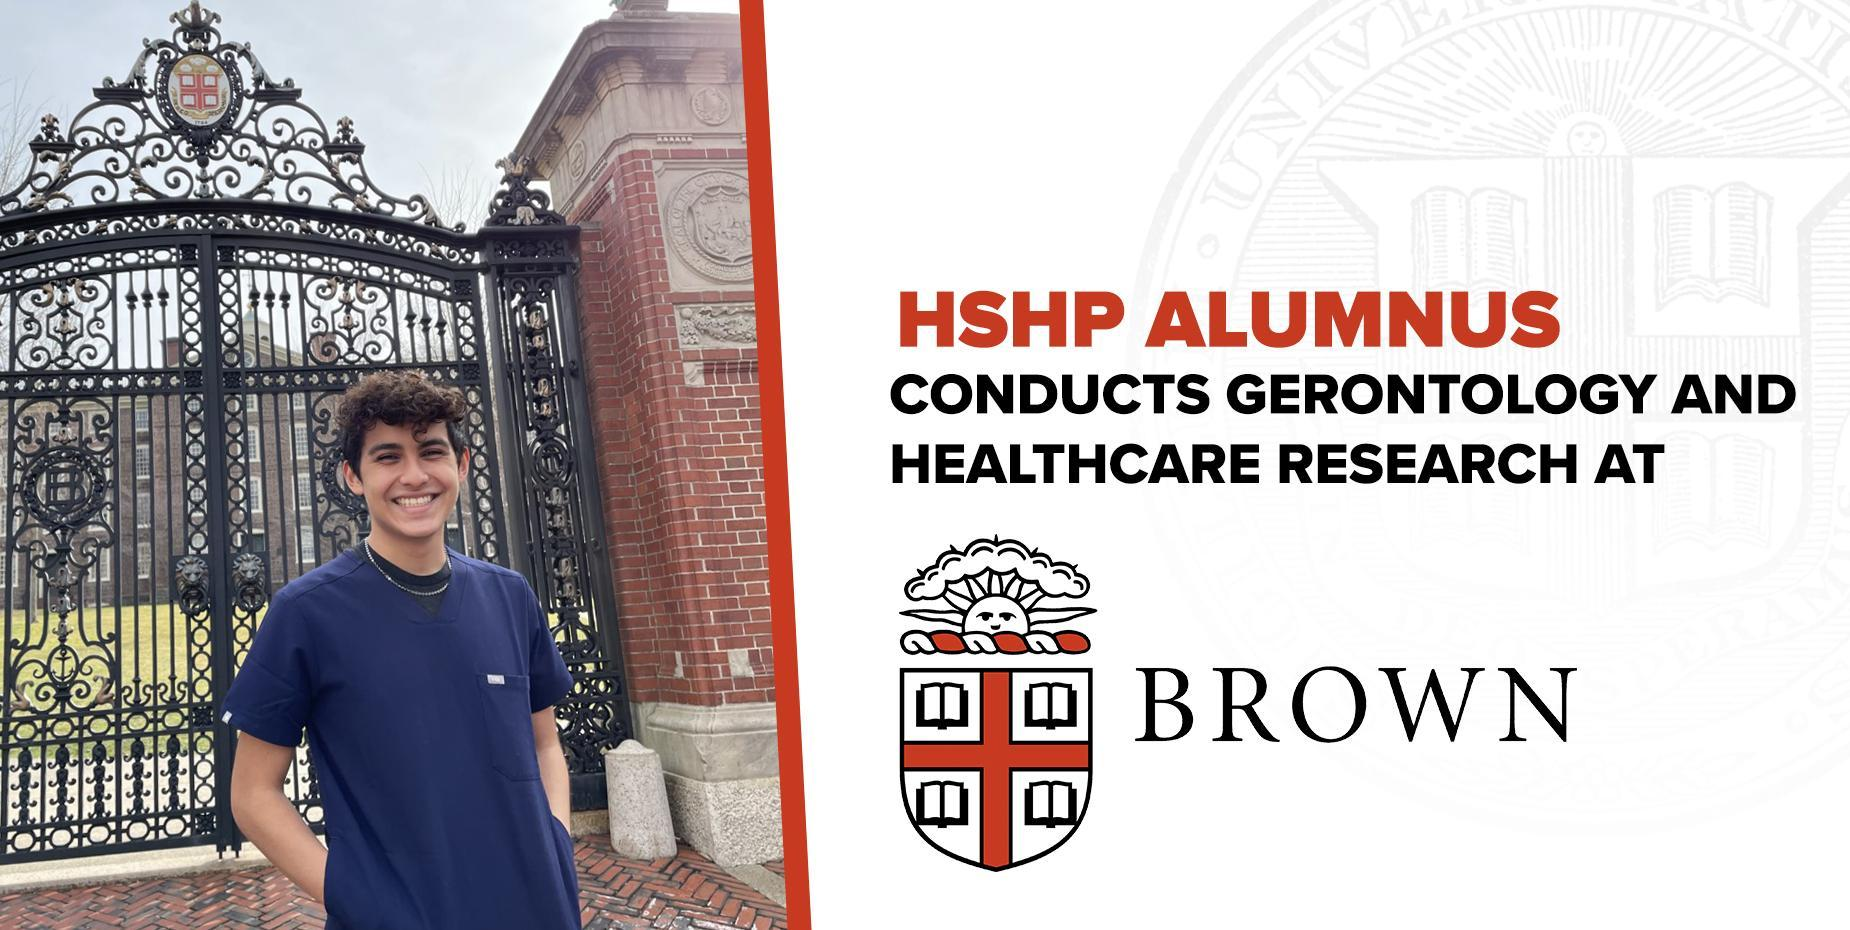 HSHP alumnus conducts gerontology and healthcare research at Brown